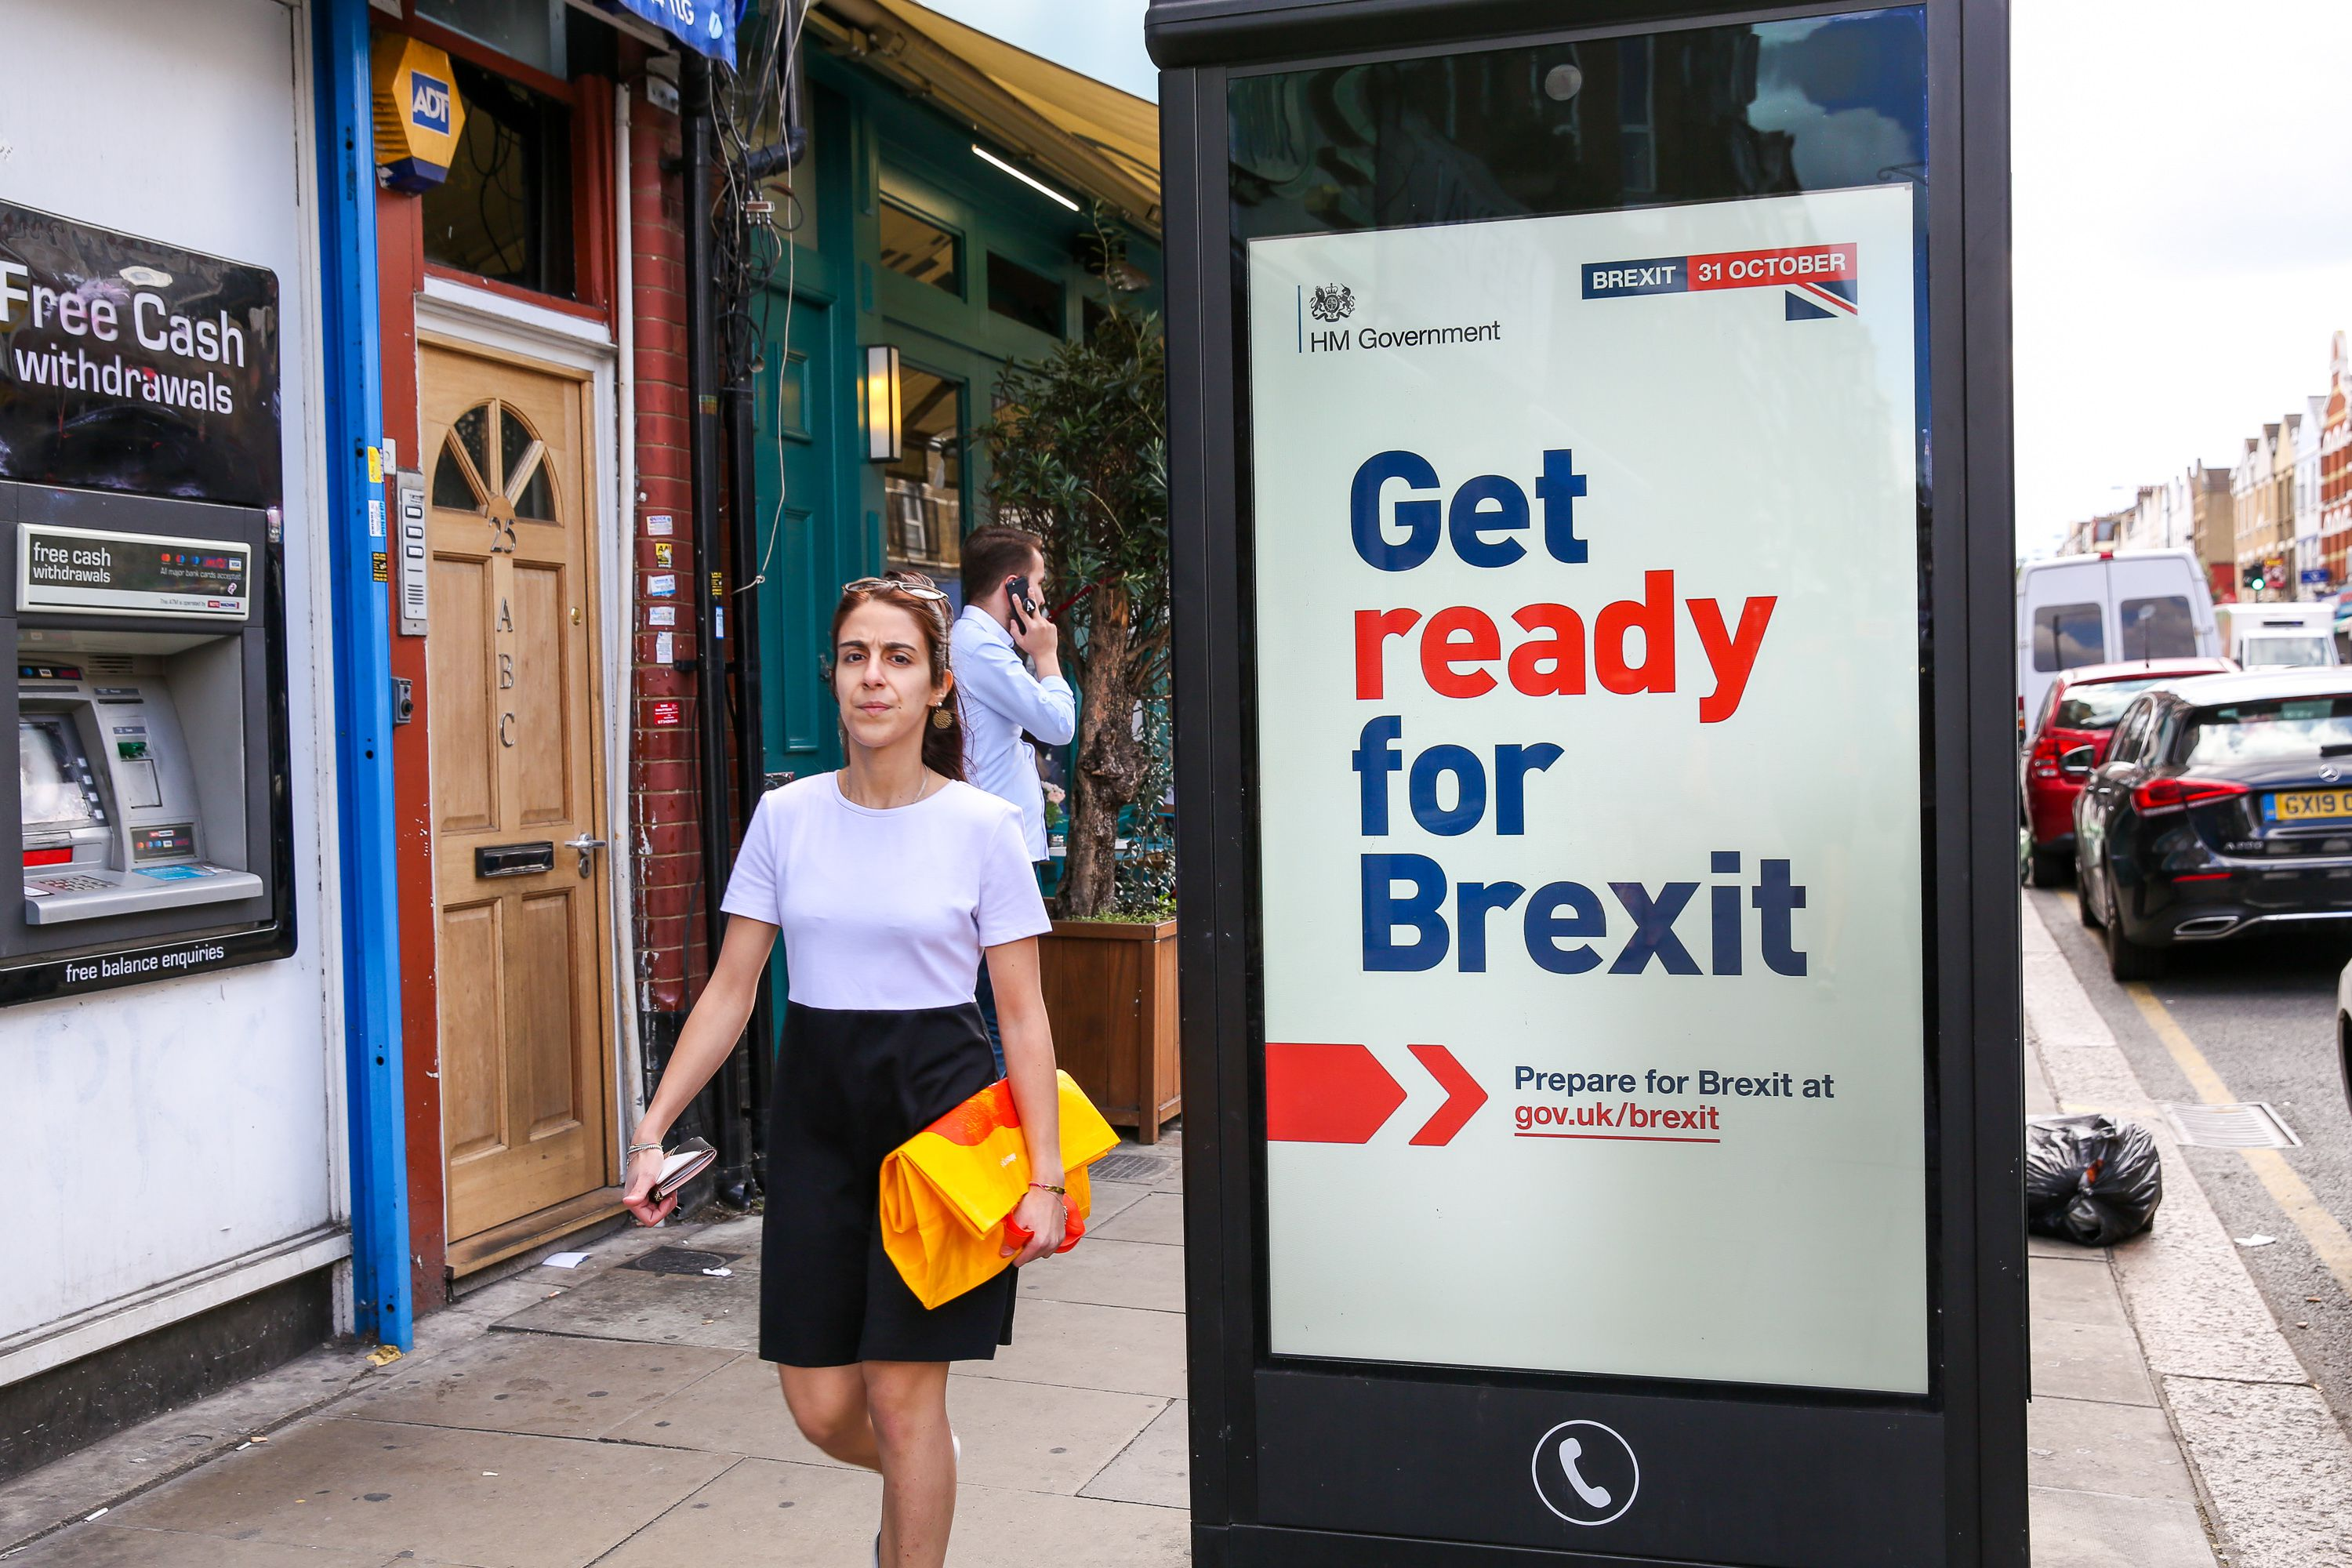 """A woman walks past the new 'Get ready for Brexit' advert on a telephone box in north London. Today, the UK Government launches its £100m """"Prepare for Brexit"""" advertising campaign to reassure the nation ahead of a potential no-deal departure from the European Union on 31 October.Government's £100m Brexit campaign, London, UK - 01 Sep 2019"""